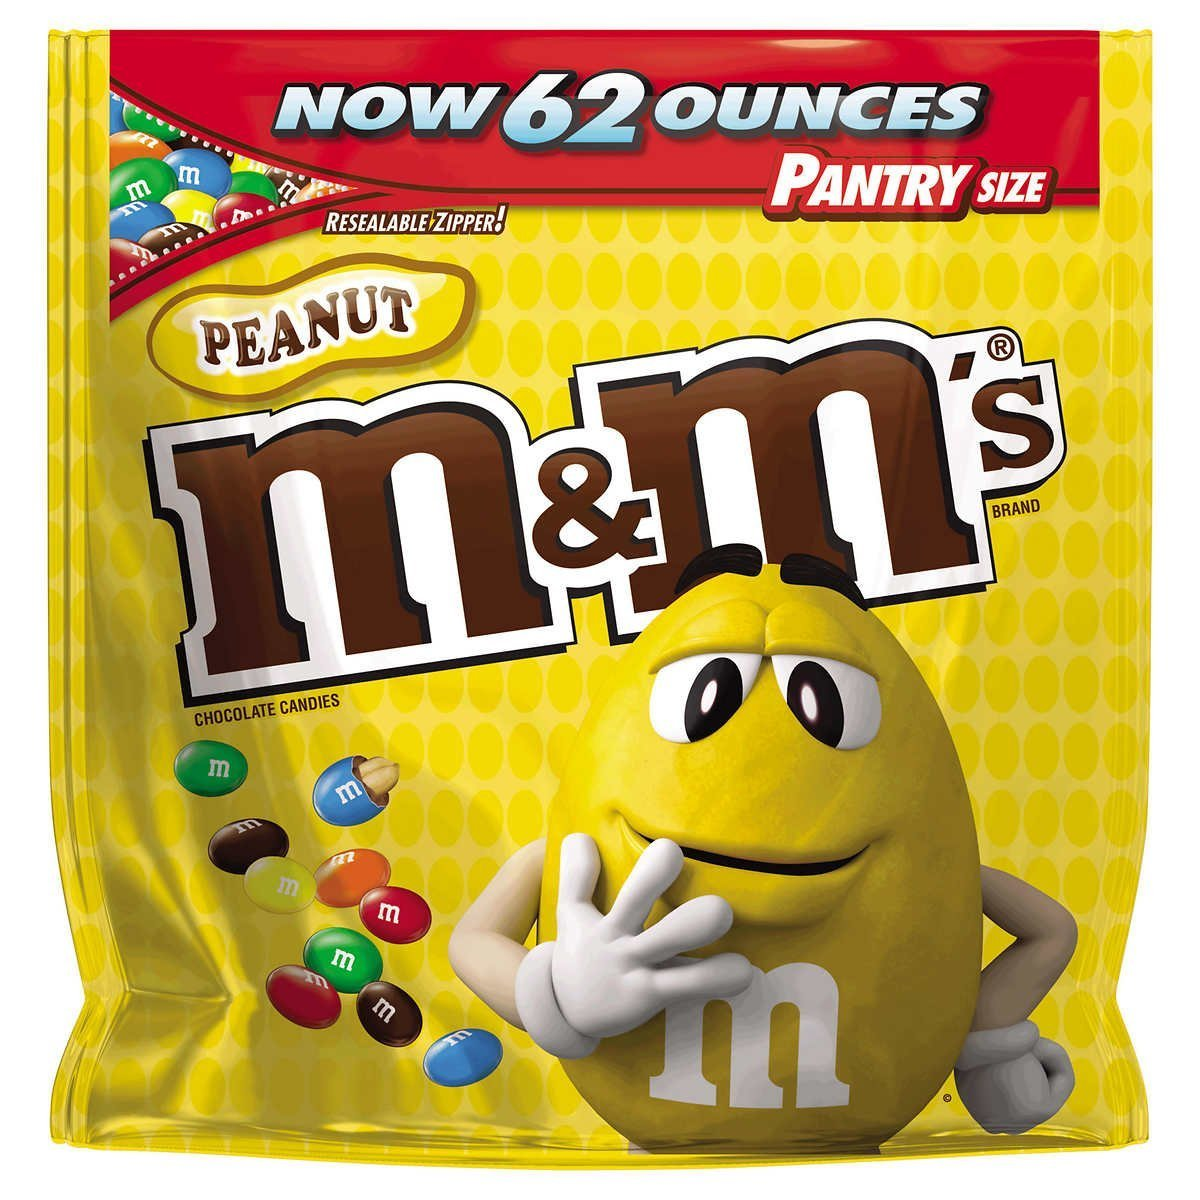 Peanut M&M's Chocolate Candies, Pantry Size 62 oz. Resealable Bag